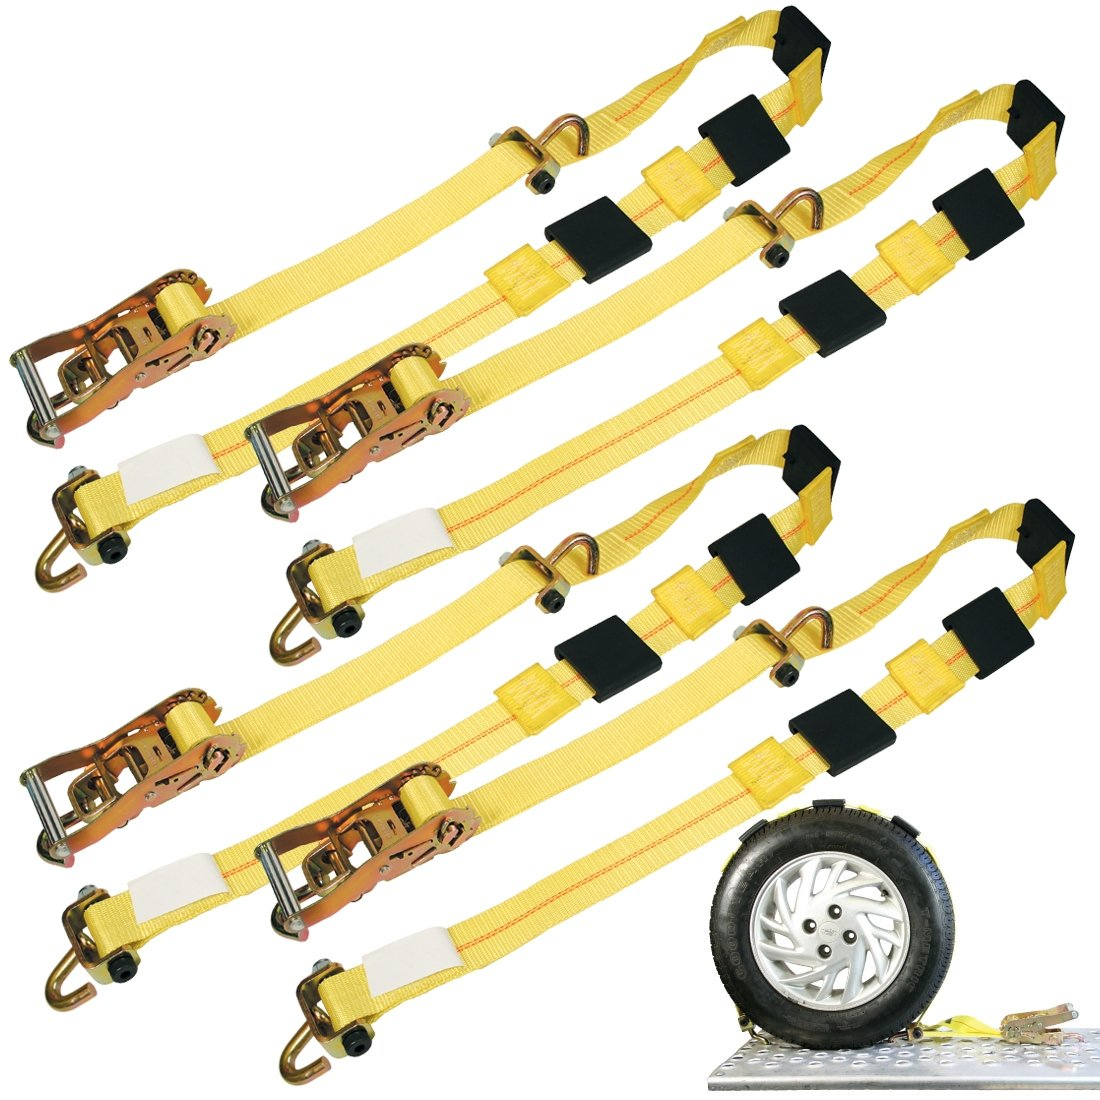 Vulcan Classic Rolling Idler Three Cleat Auto Tie Down System - 3300 lbs. SWL (120'' - Pack of 4)